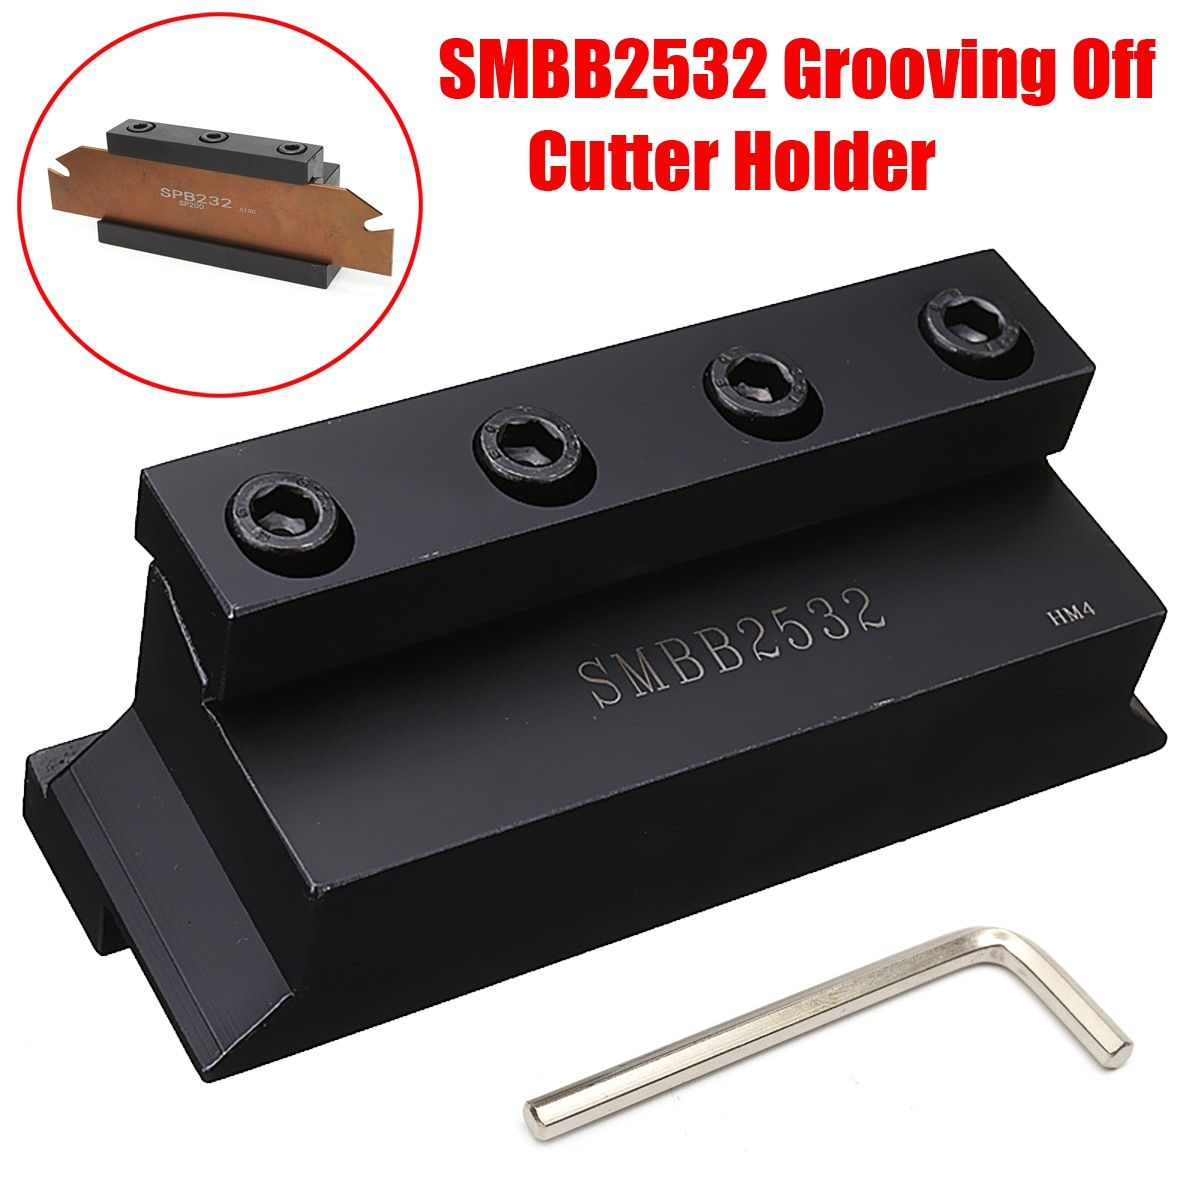 New 1Pc SMBB2532 Cut-Off Blade Holder 25mm for Lathe Cutting Tool with T Wrench for CNC Milling Cutter Tool